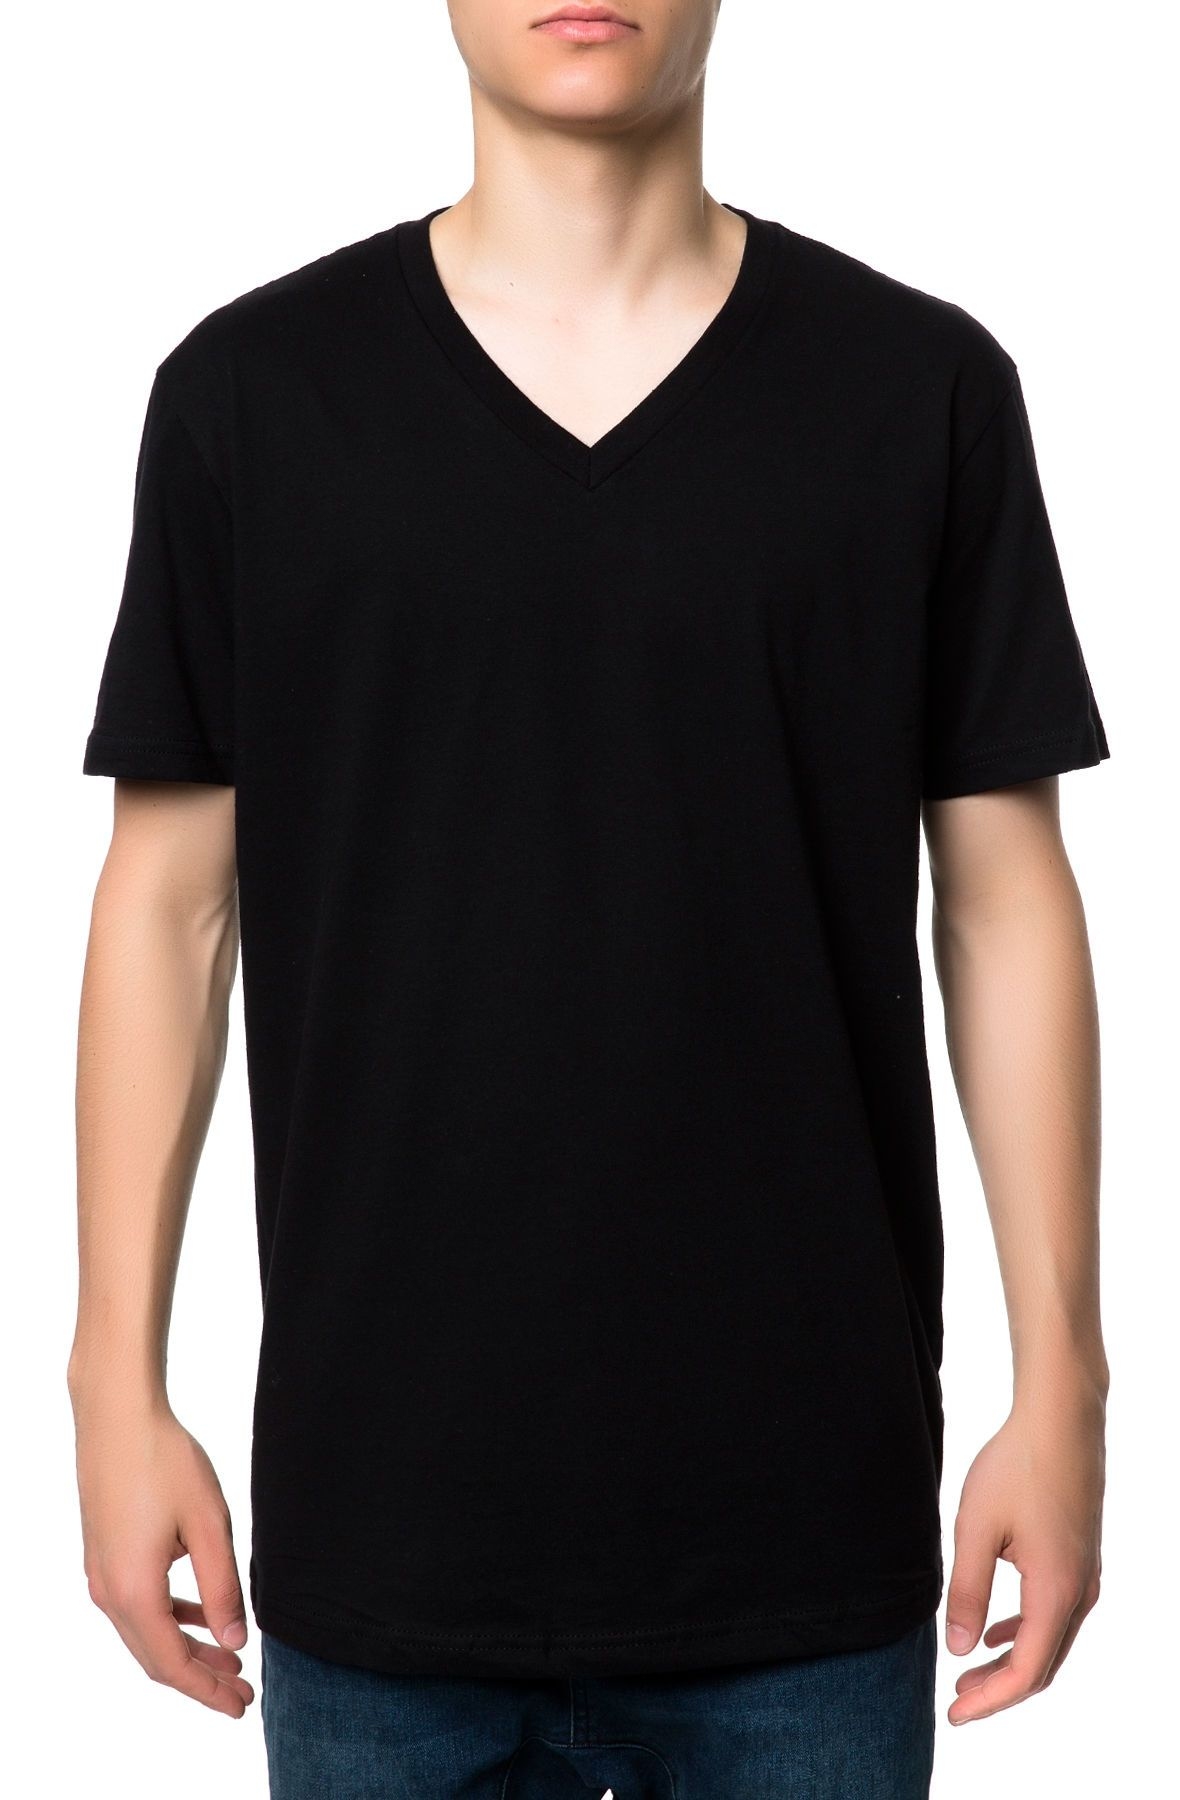 the basic vneck tee in black